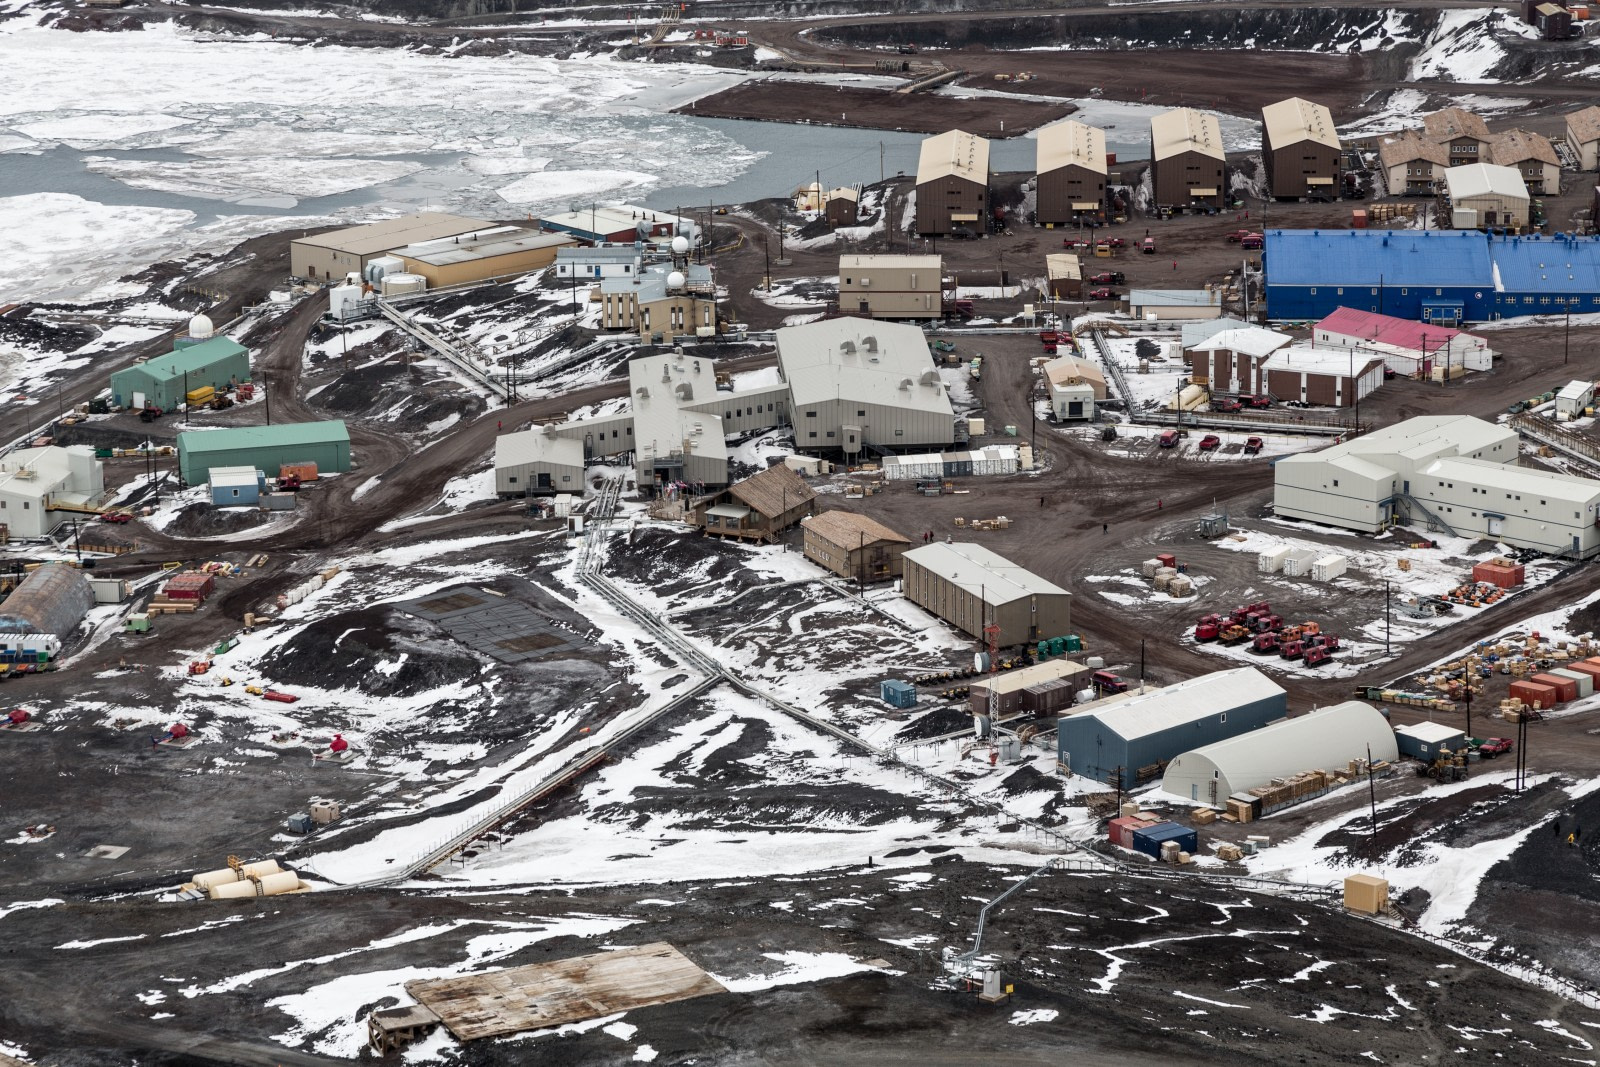 McMurdo Base